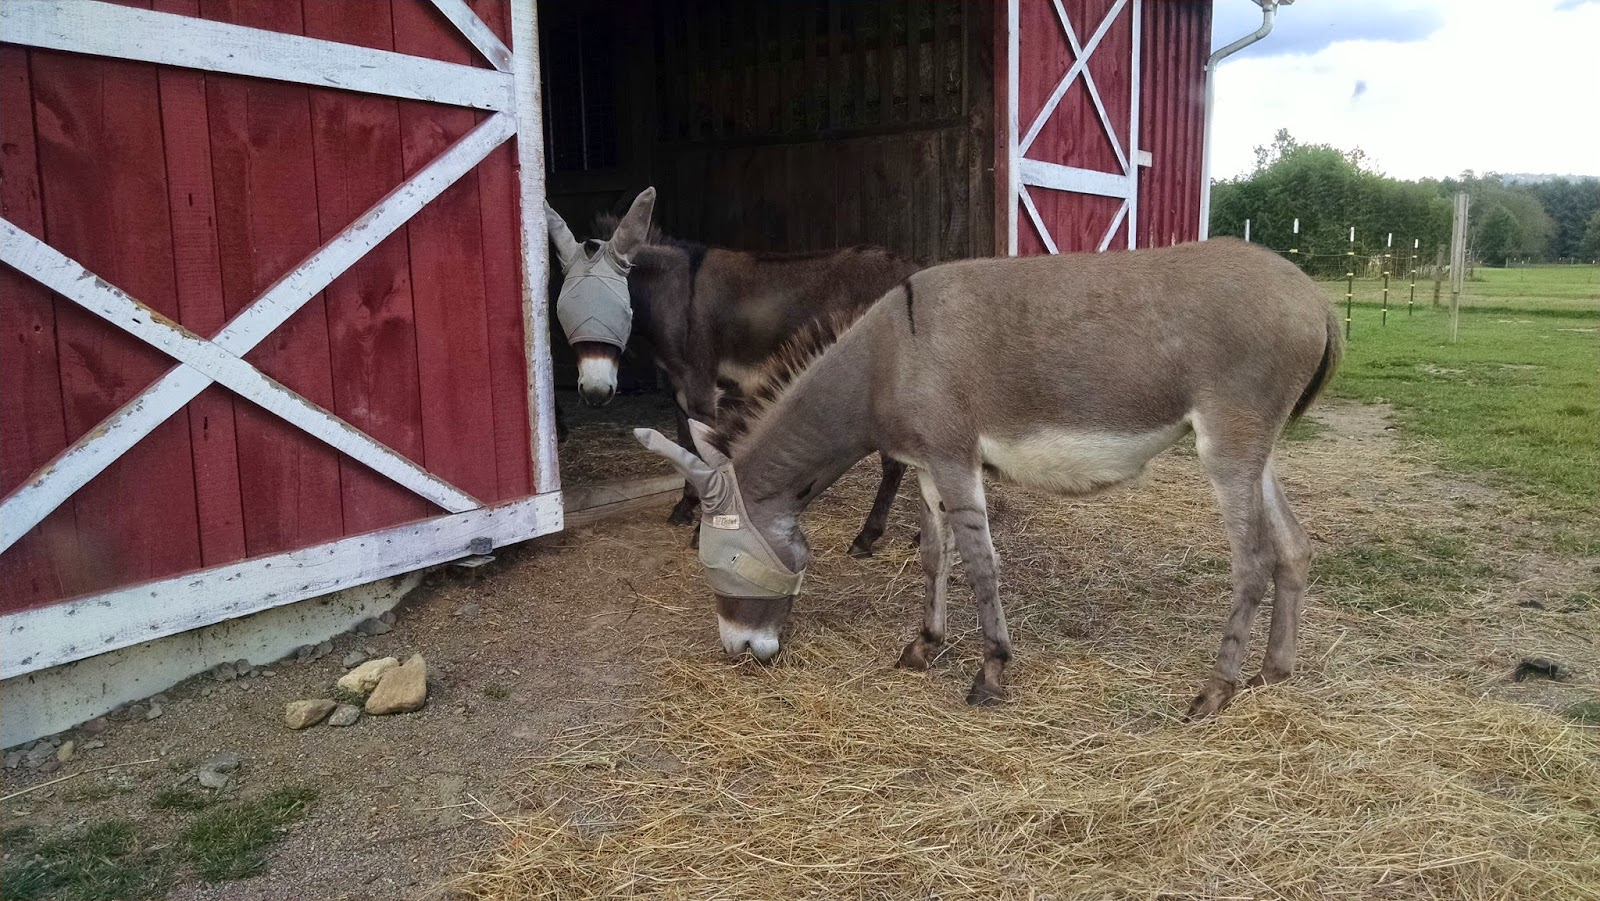 two miniature donkeys eating hay on the ground